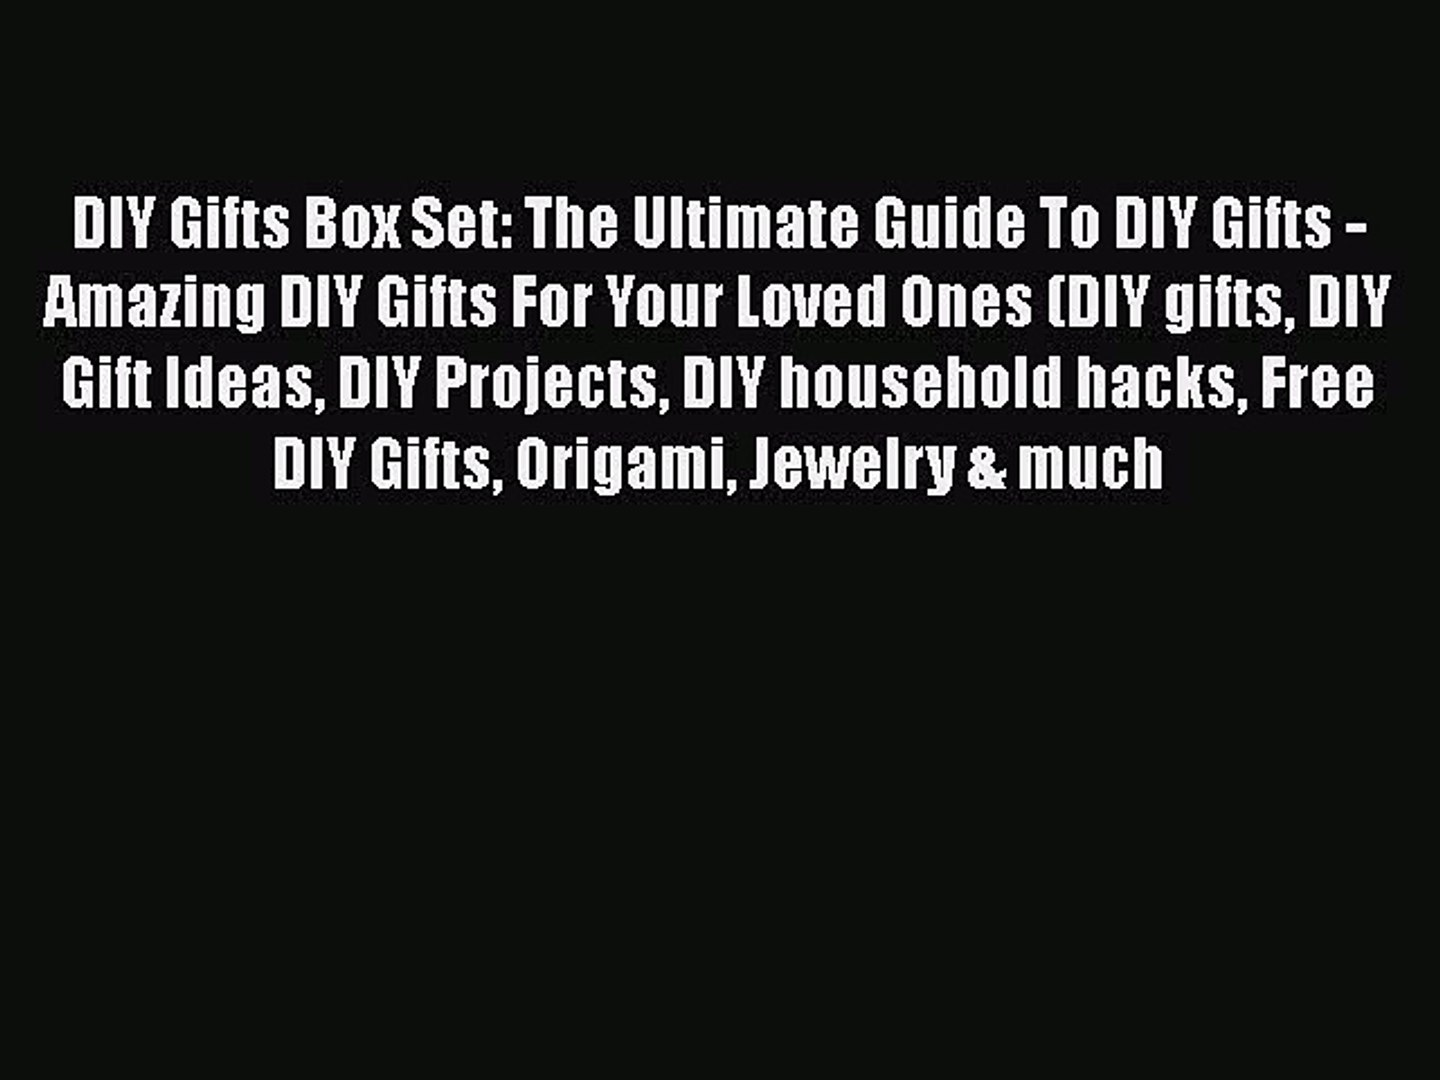 [Read Book] DIY Gifts Box Set: The Ultimate Guide To DIY Gifts - Amazing DIY Gifts For Your